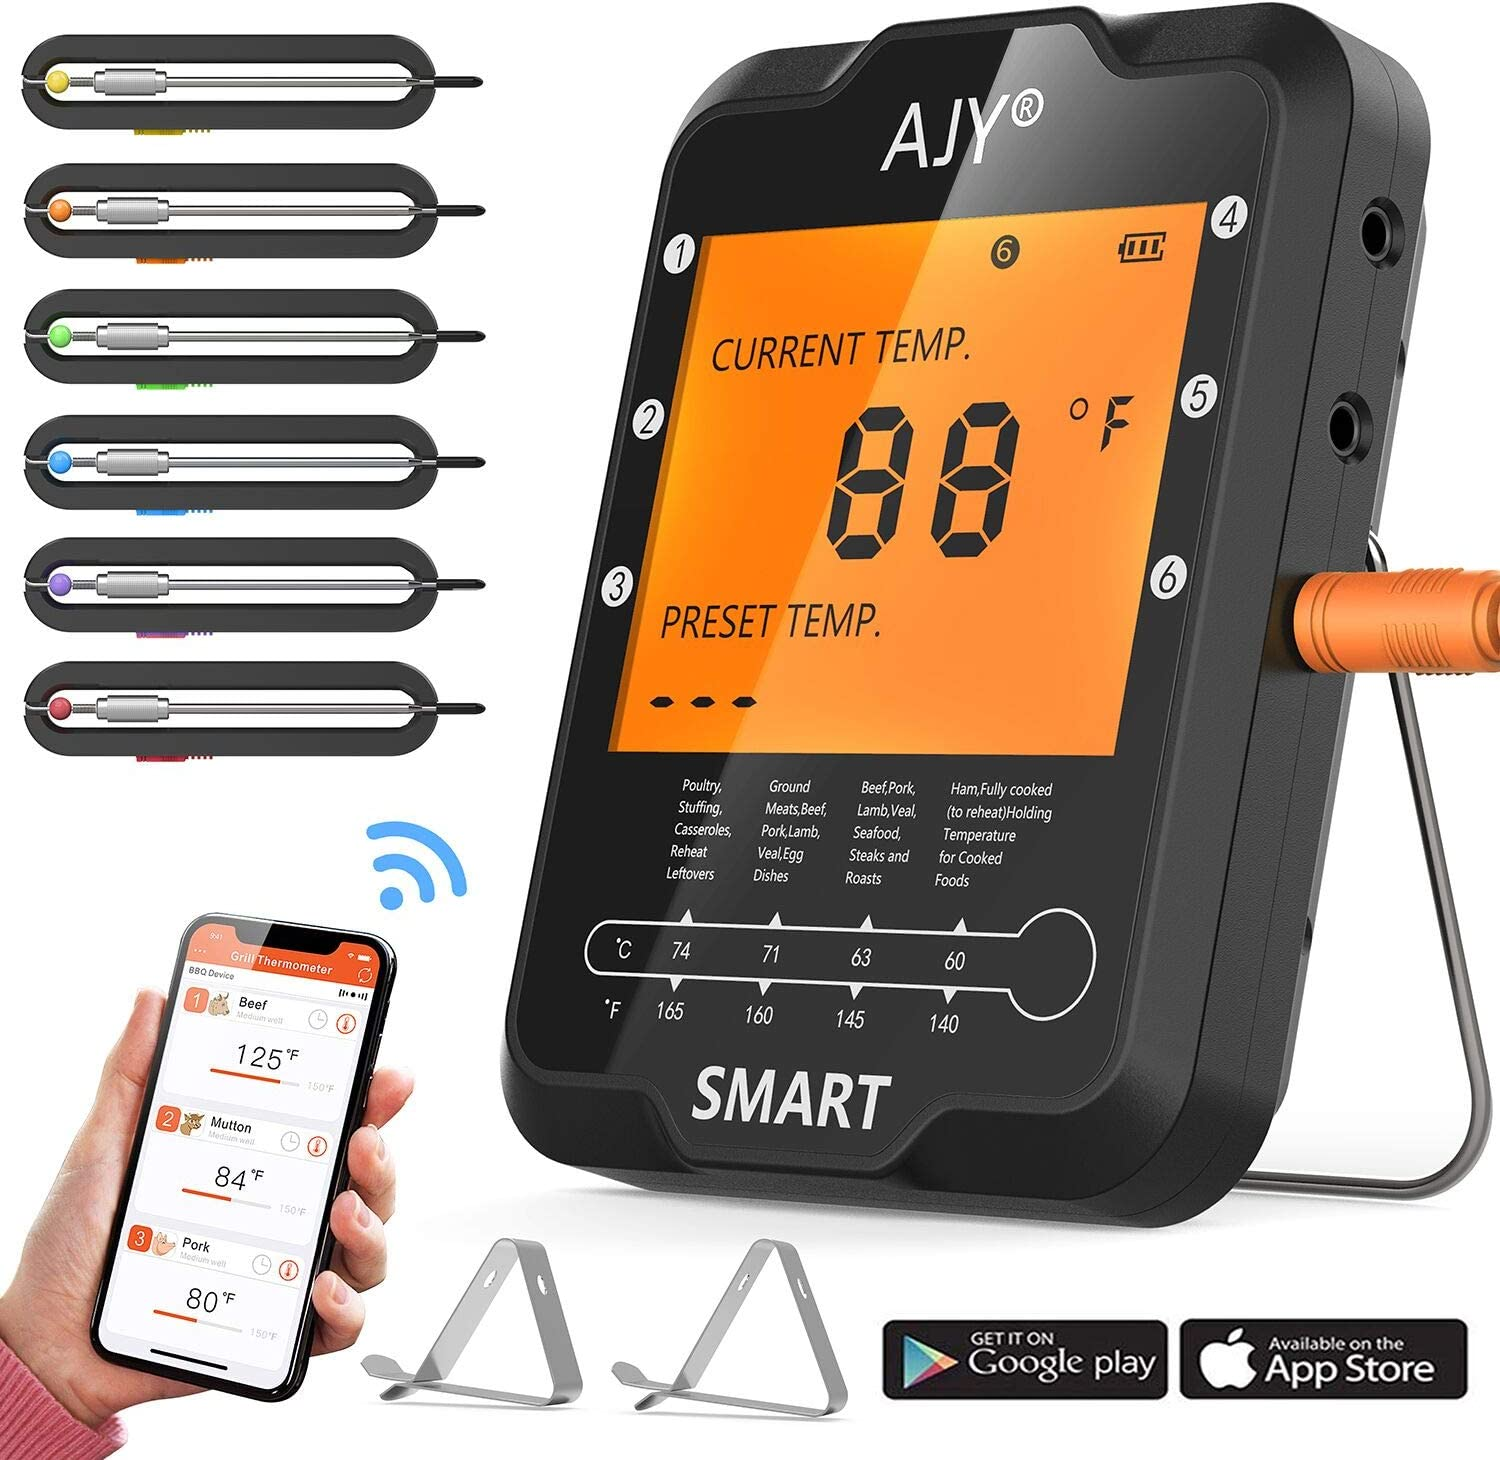 Best digital cooking thermometer: AJY SMART thermometer